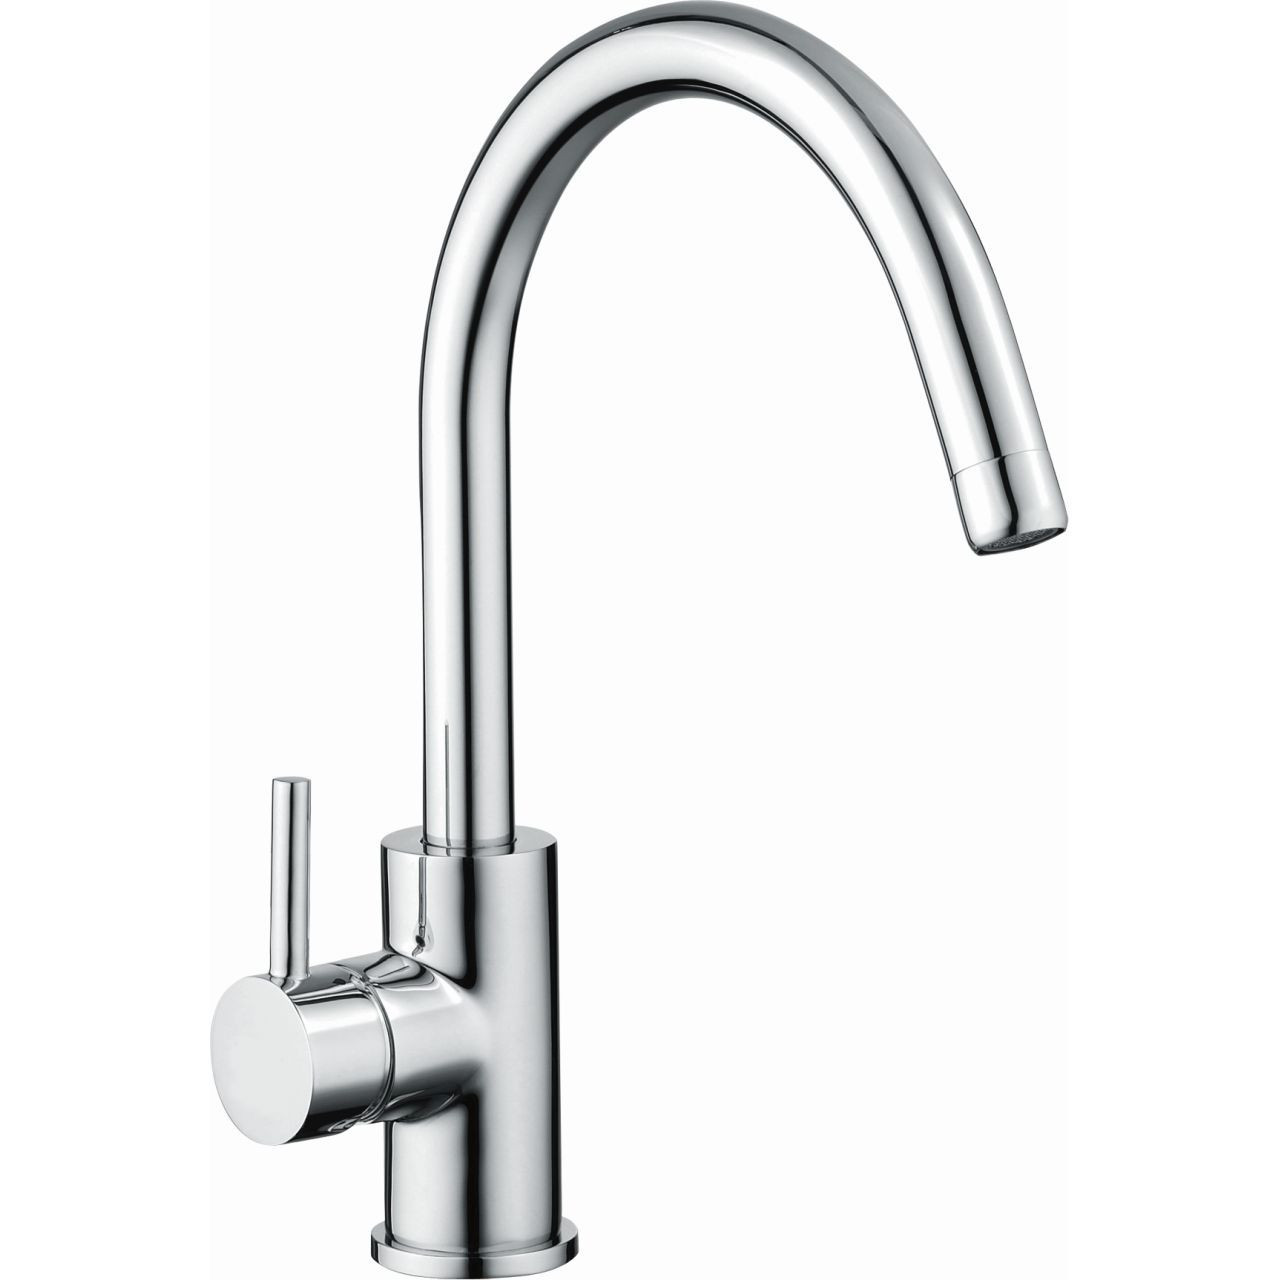 RAK Paris Side Lever Kitchen Sink Mixer Tap - RAKKIT004